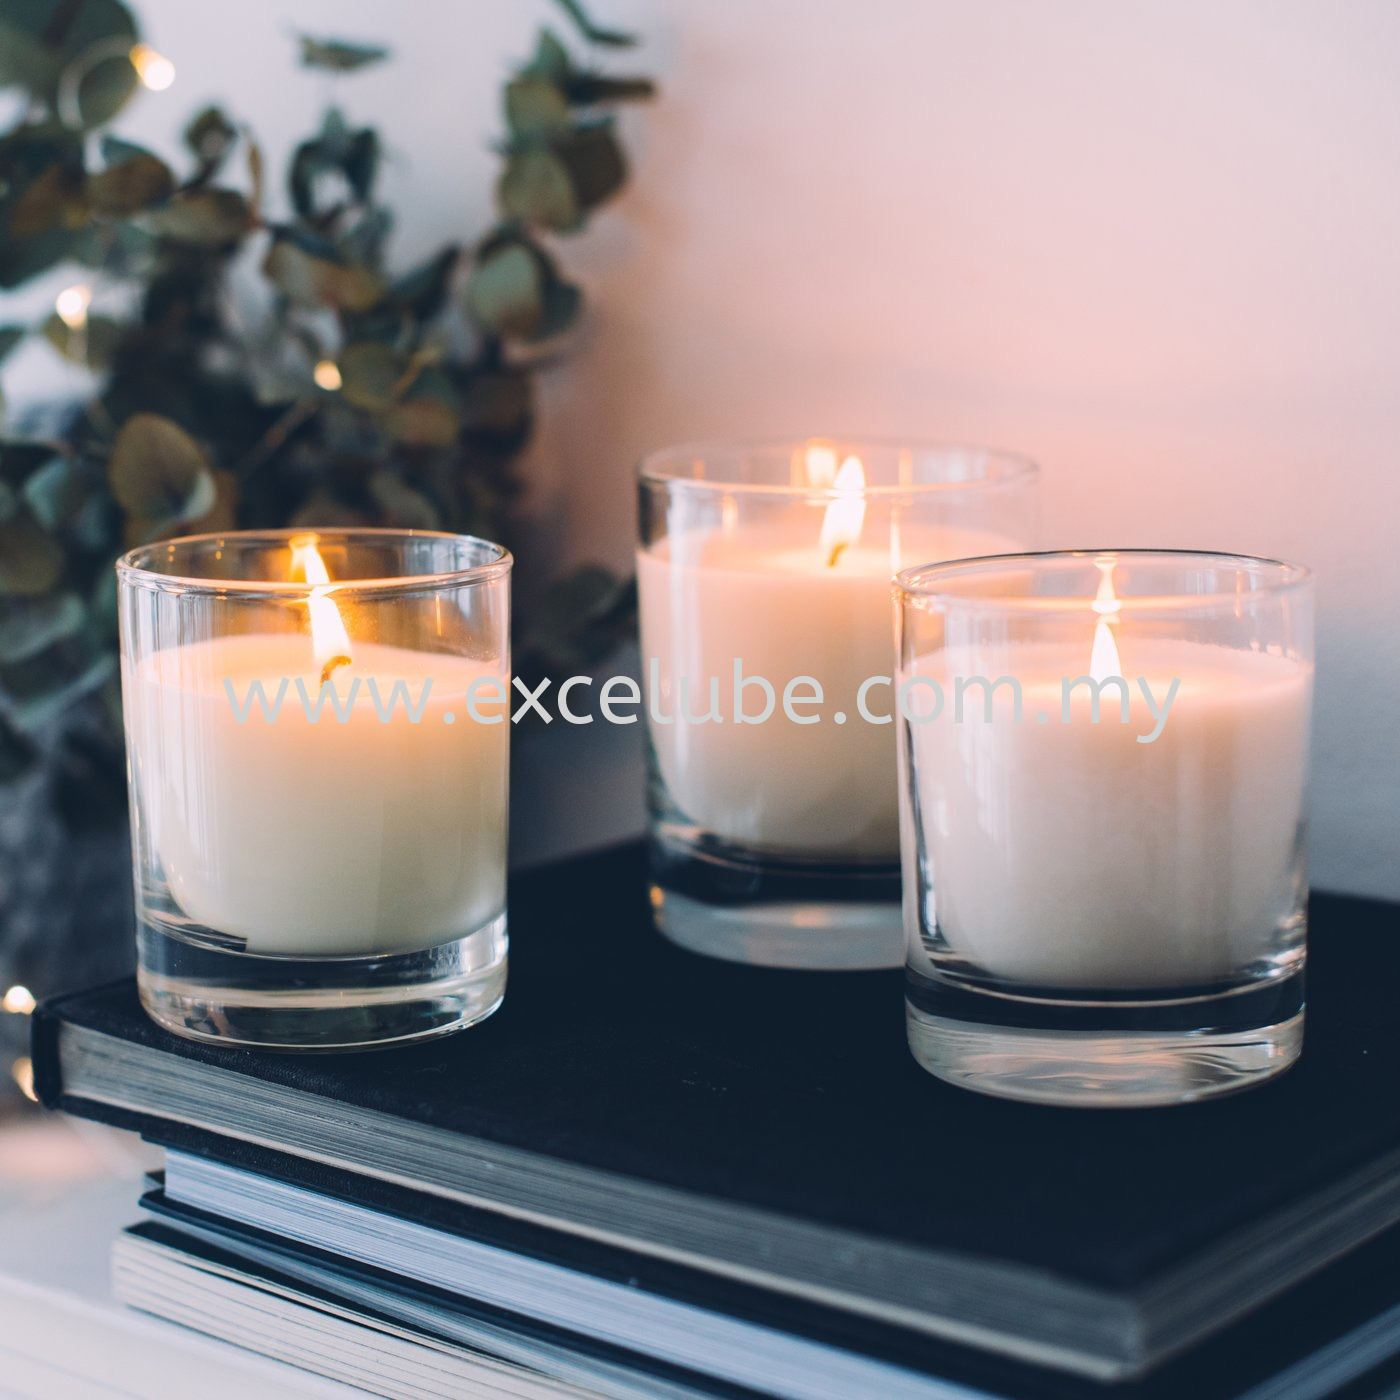 Paraffin Wax for Candle Manufacturing - May 09, 2019